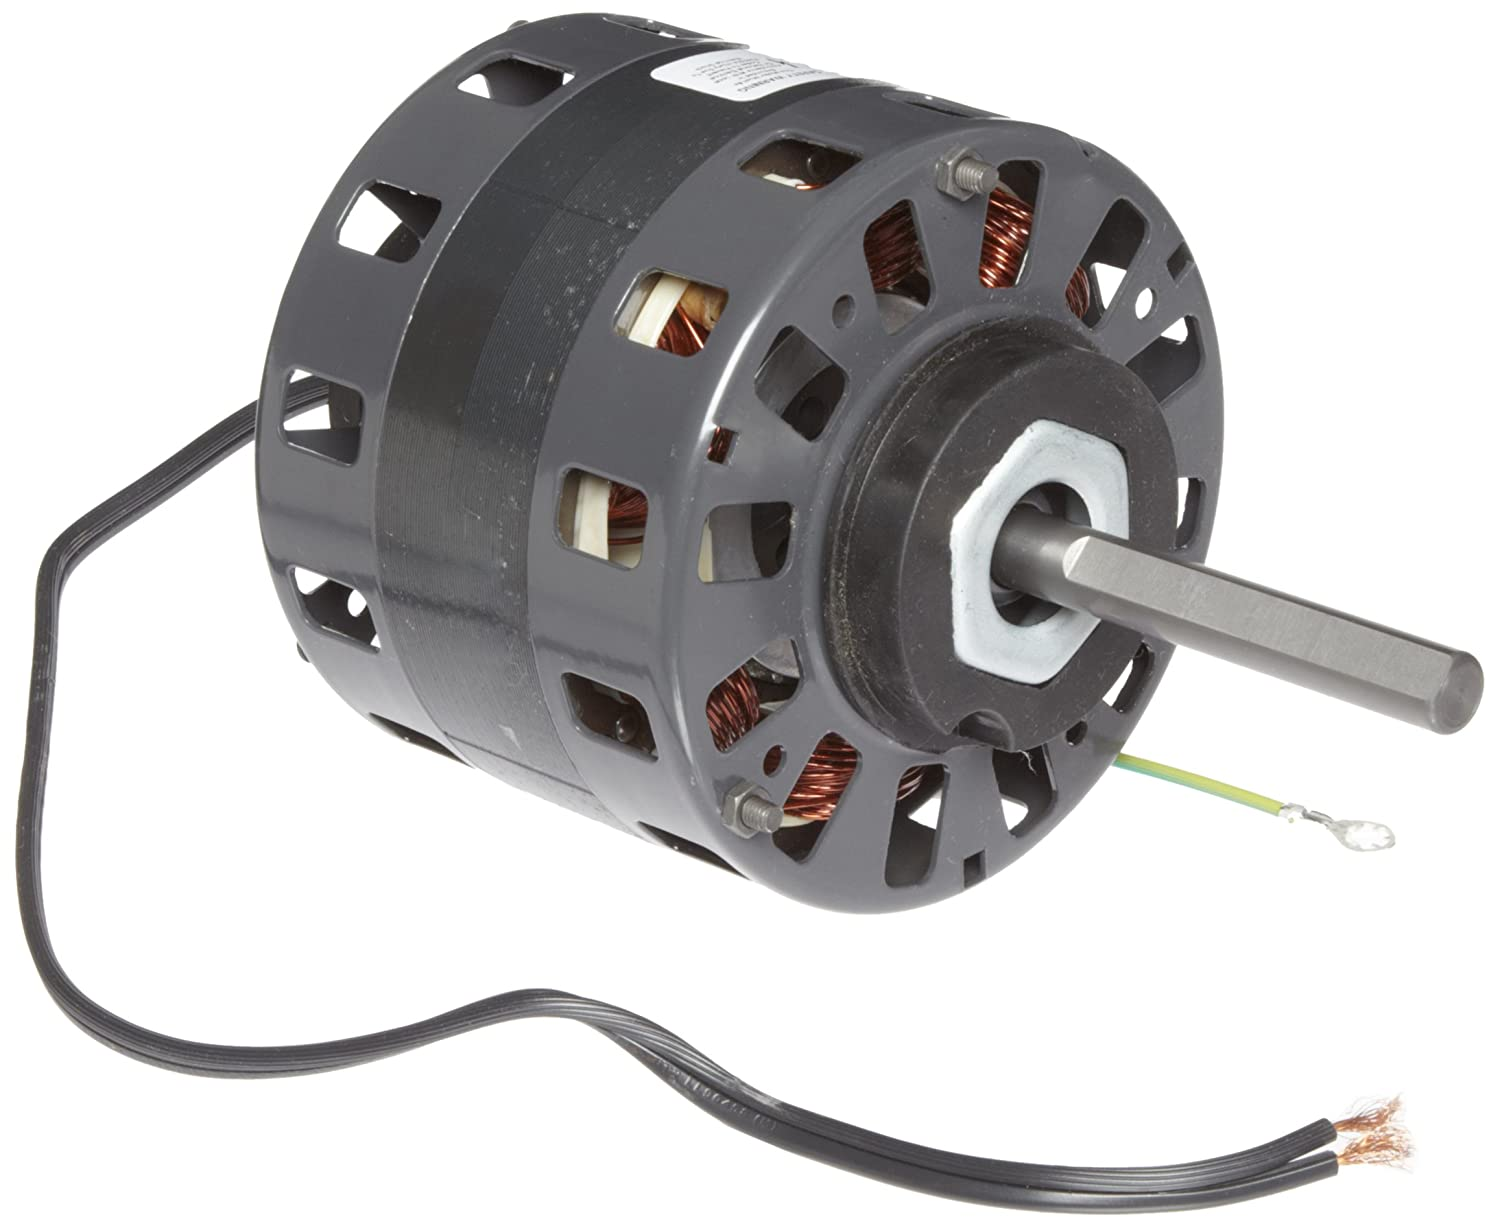 """Fasco D156 5"""" Frame Open Ventilated Shaded Pole Direct Drive Blower Motor with Sleeve Bearing, 1/6HP, 1050rpm, 115V, 60Hz, 6.6 amps"""